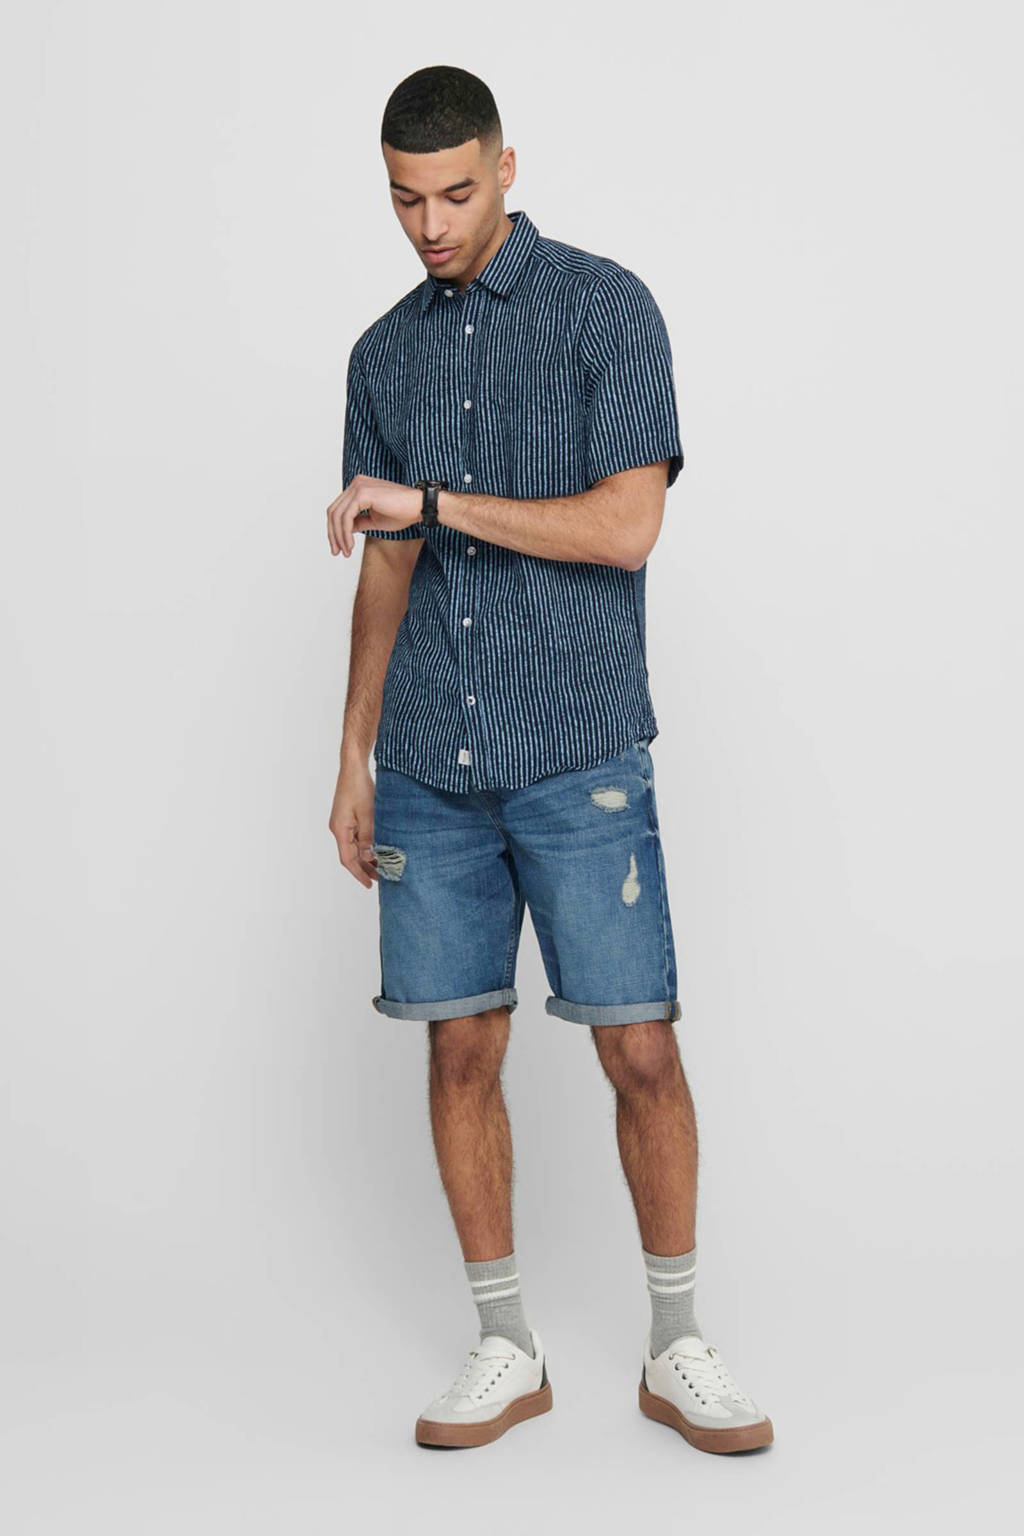 ONLY & SONS gestreept slim fit overhemd donkerblauw, Donkerblauw